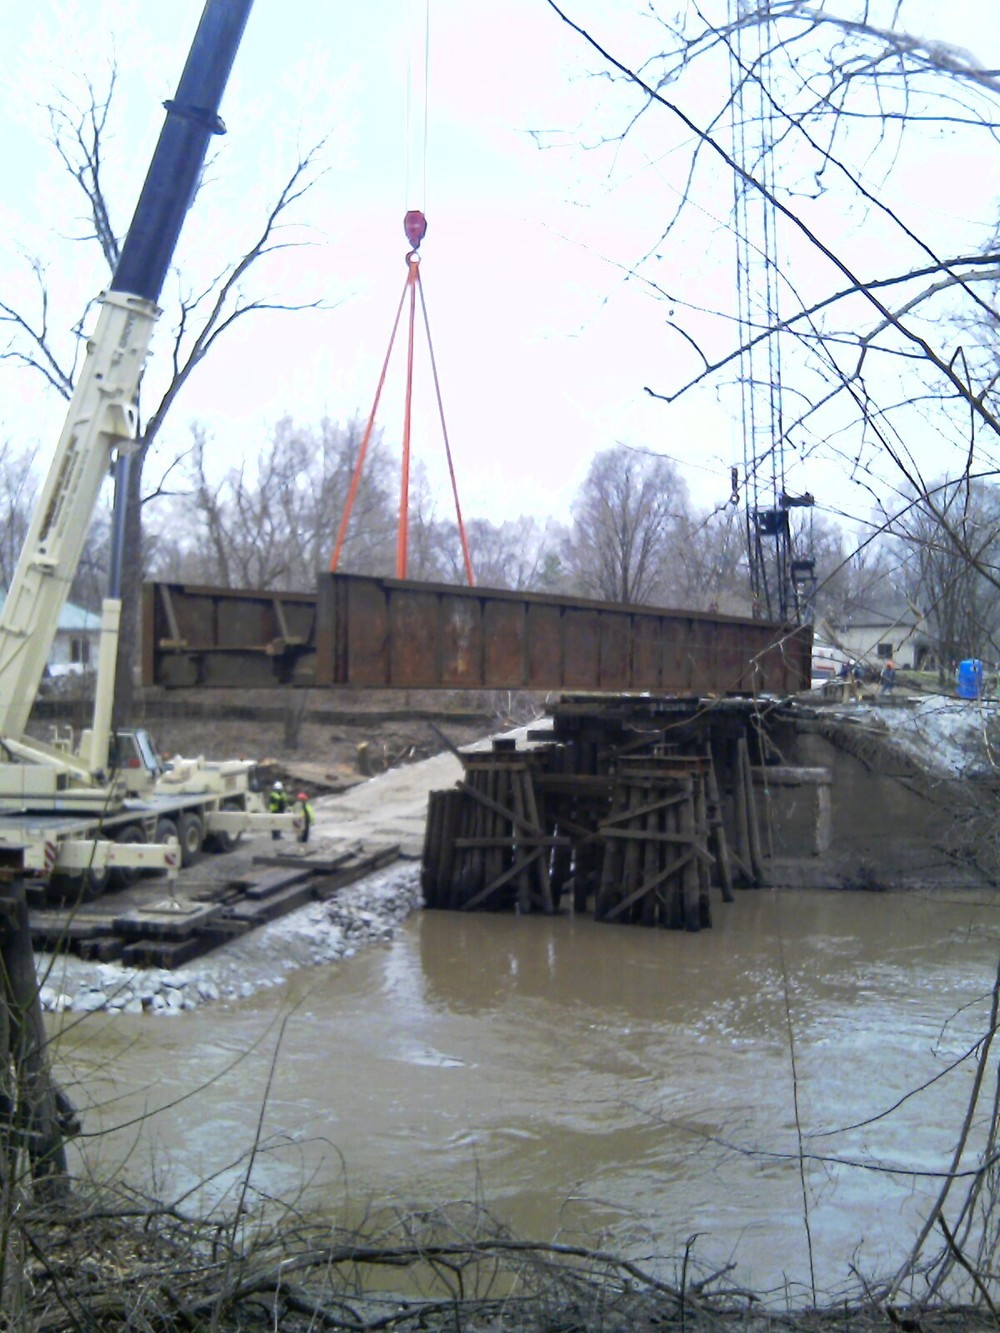 Roacheport, MO Historic Katy Trail Bridge Replacement